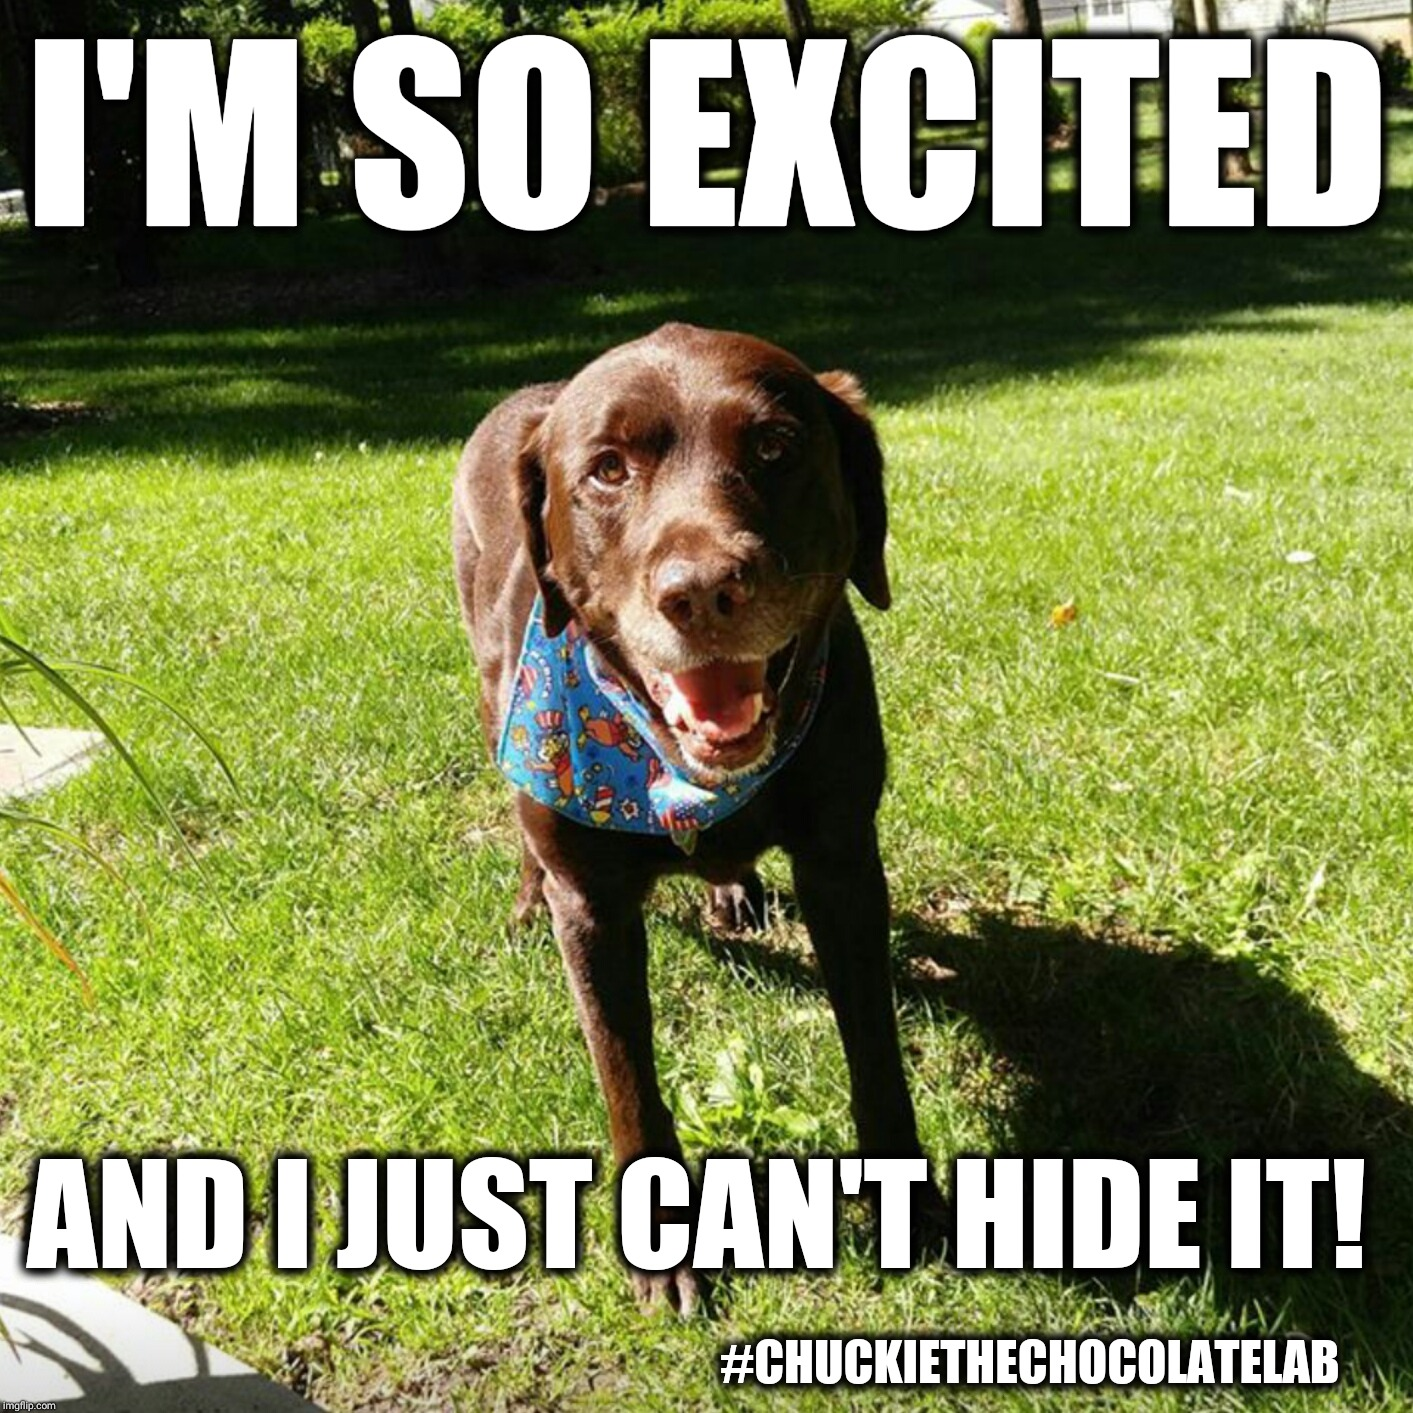 I'm so excited!  | I'M SO EXCITED #CHUCKIETHECHOCOLATELAB AND I JUST CAN'T HIDE IT! | image tagged in chuckie the chocolate lab,excited,dogs,memes,cute | made w/ Imgflip meme maker